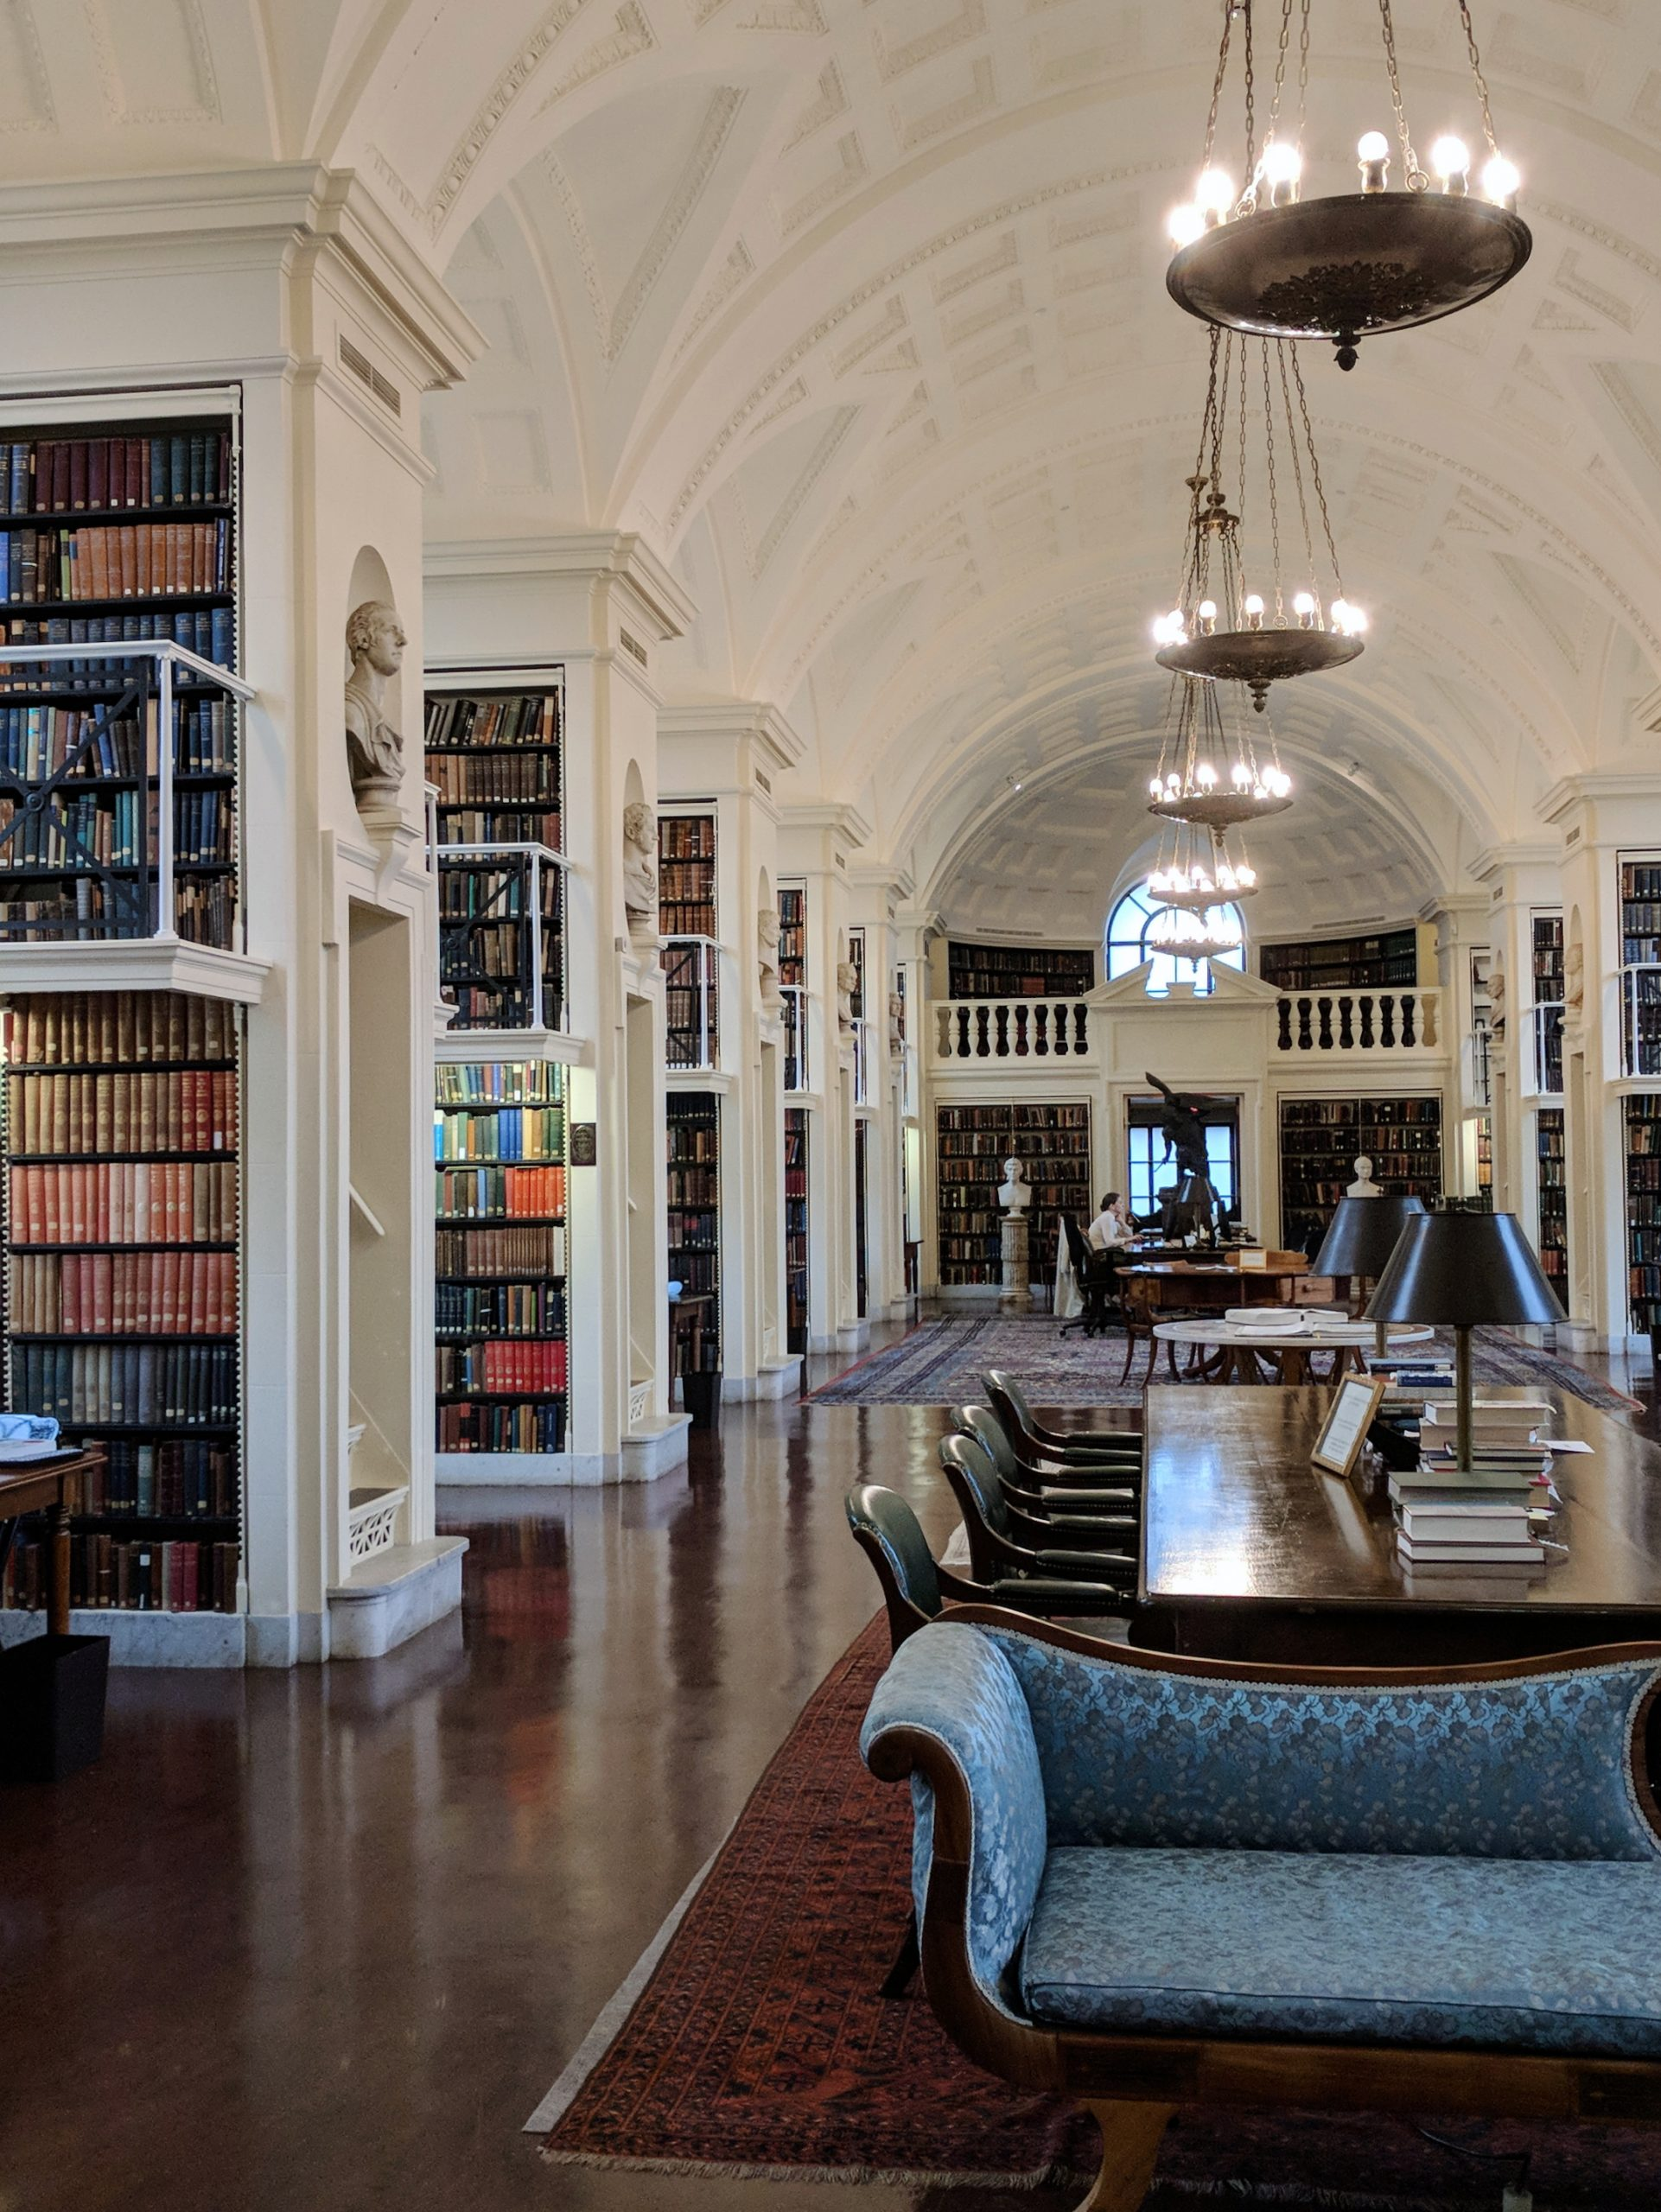 The very instagrammable fifth floor reading room of the Boston Athenaeum, with tall, white arched ceilings and rows of colorful books